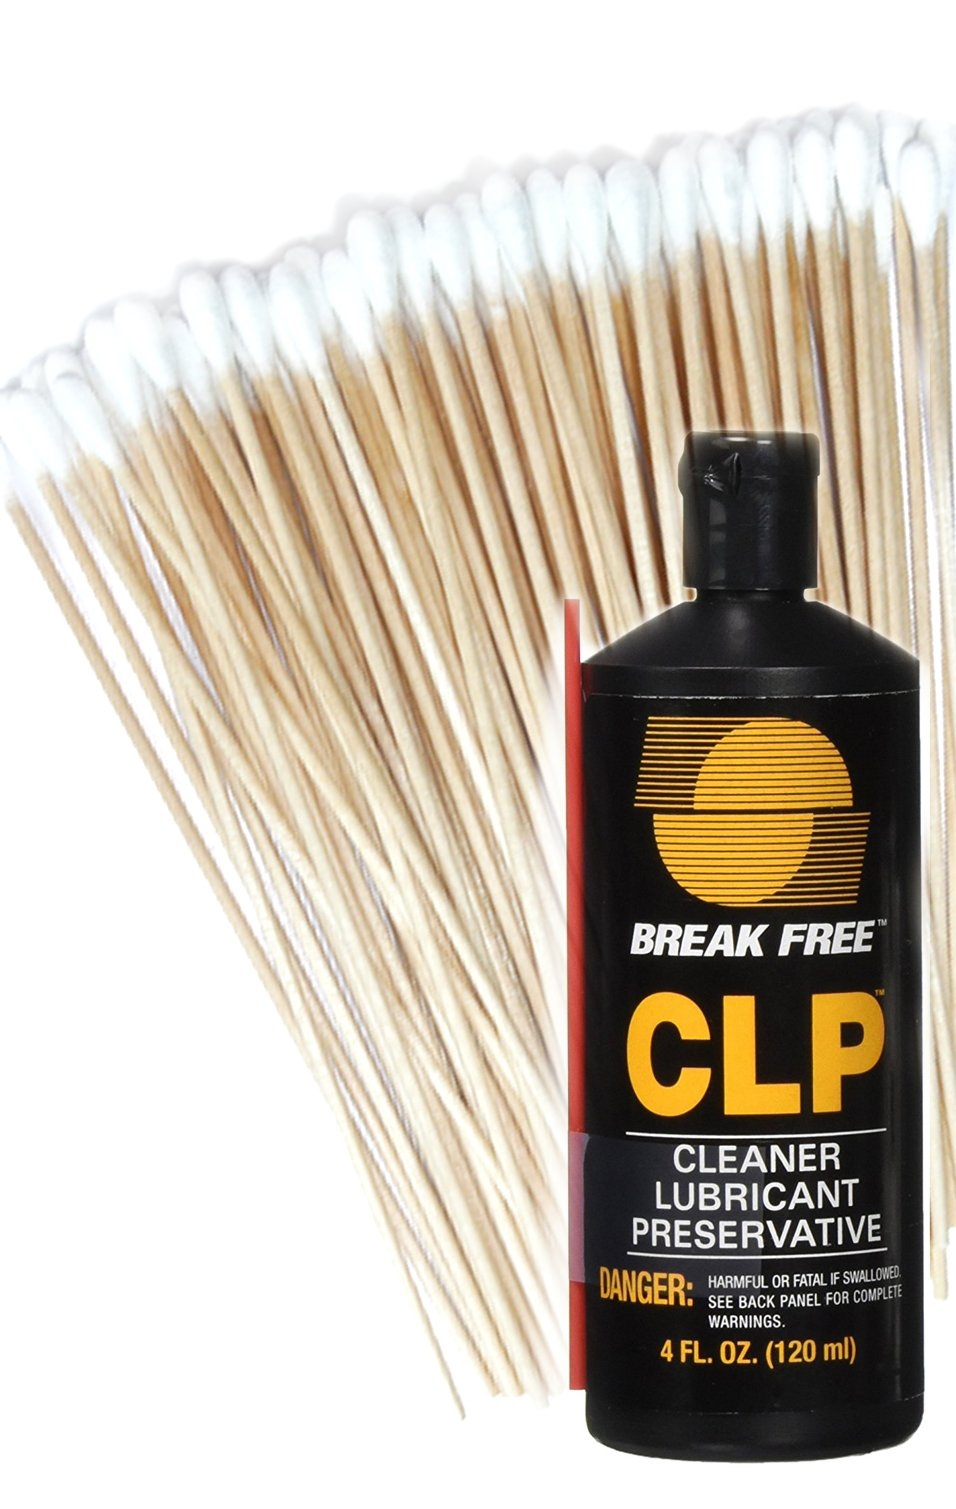 Break-Free CLP-4 Cleaner Lubricant Preservative Squeeze Bottle (4 -Fluid Ounce) and Cotton Swabs (Оnе Расk) by BreakFree and Hit Delights